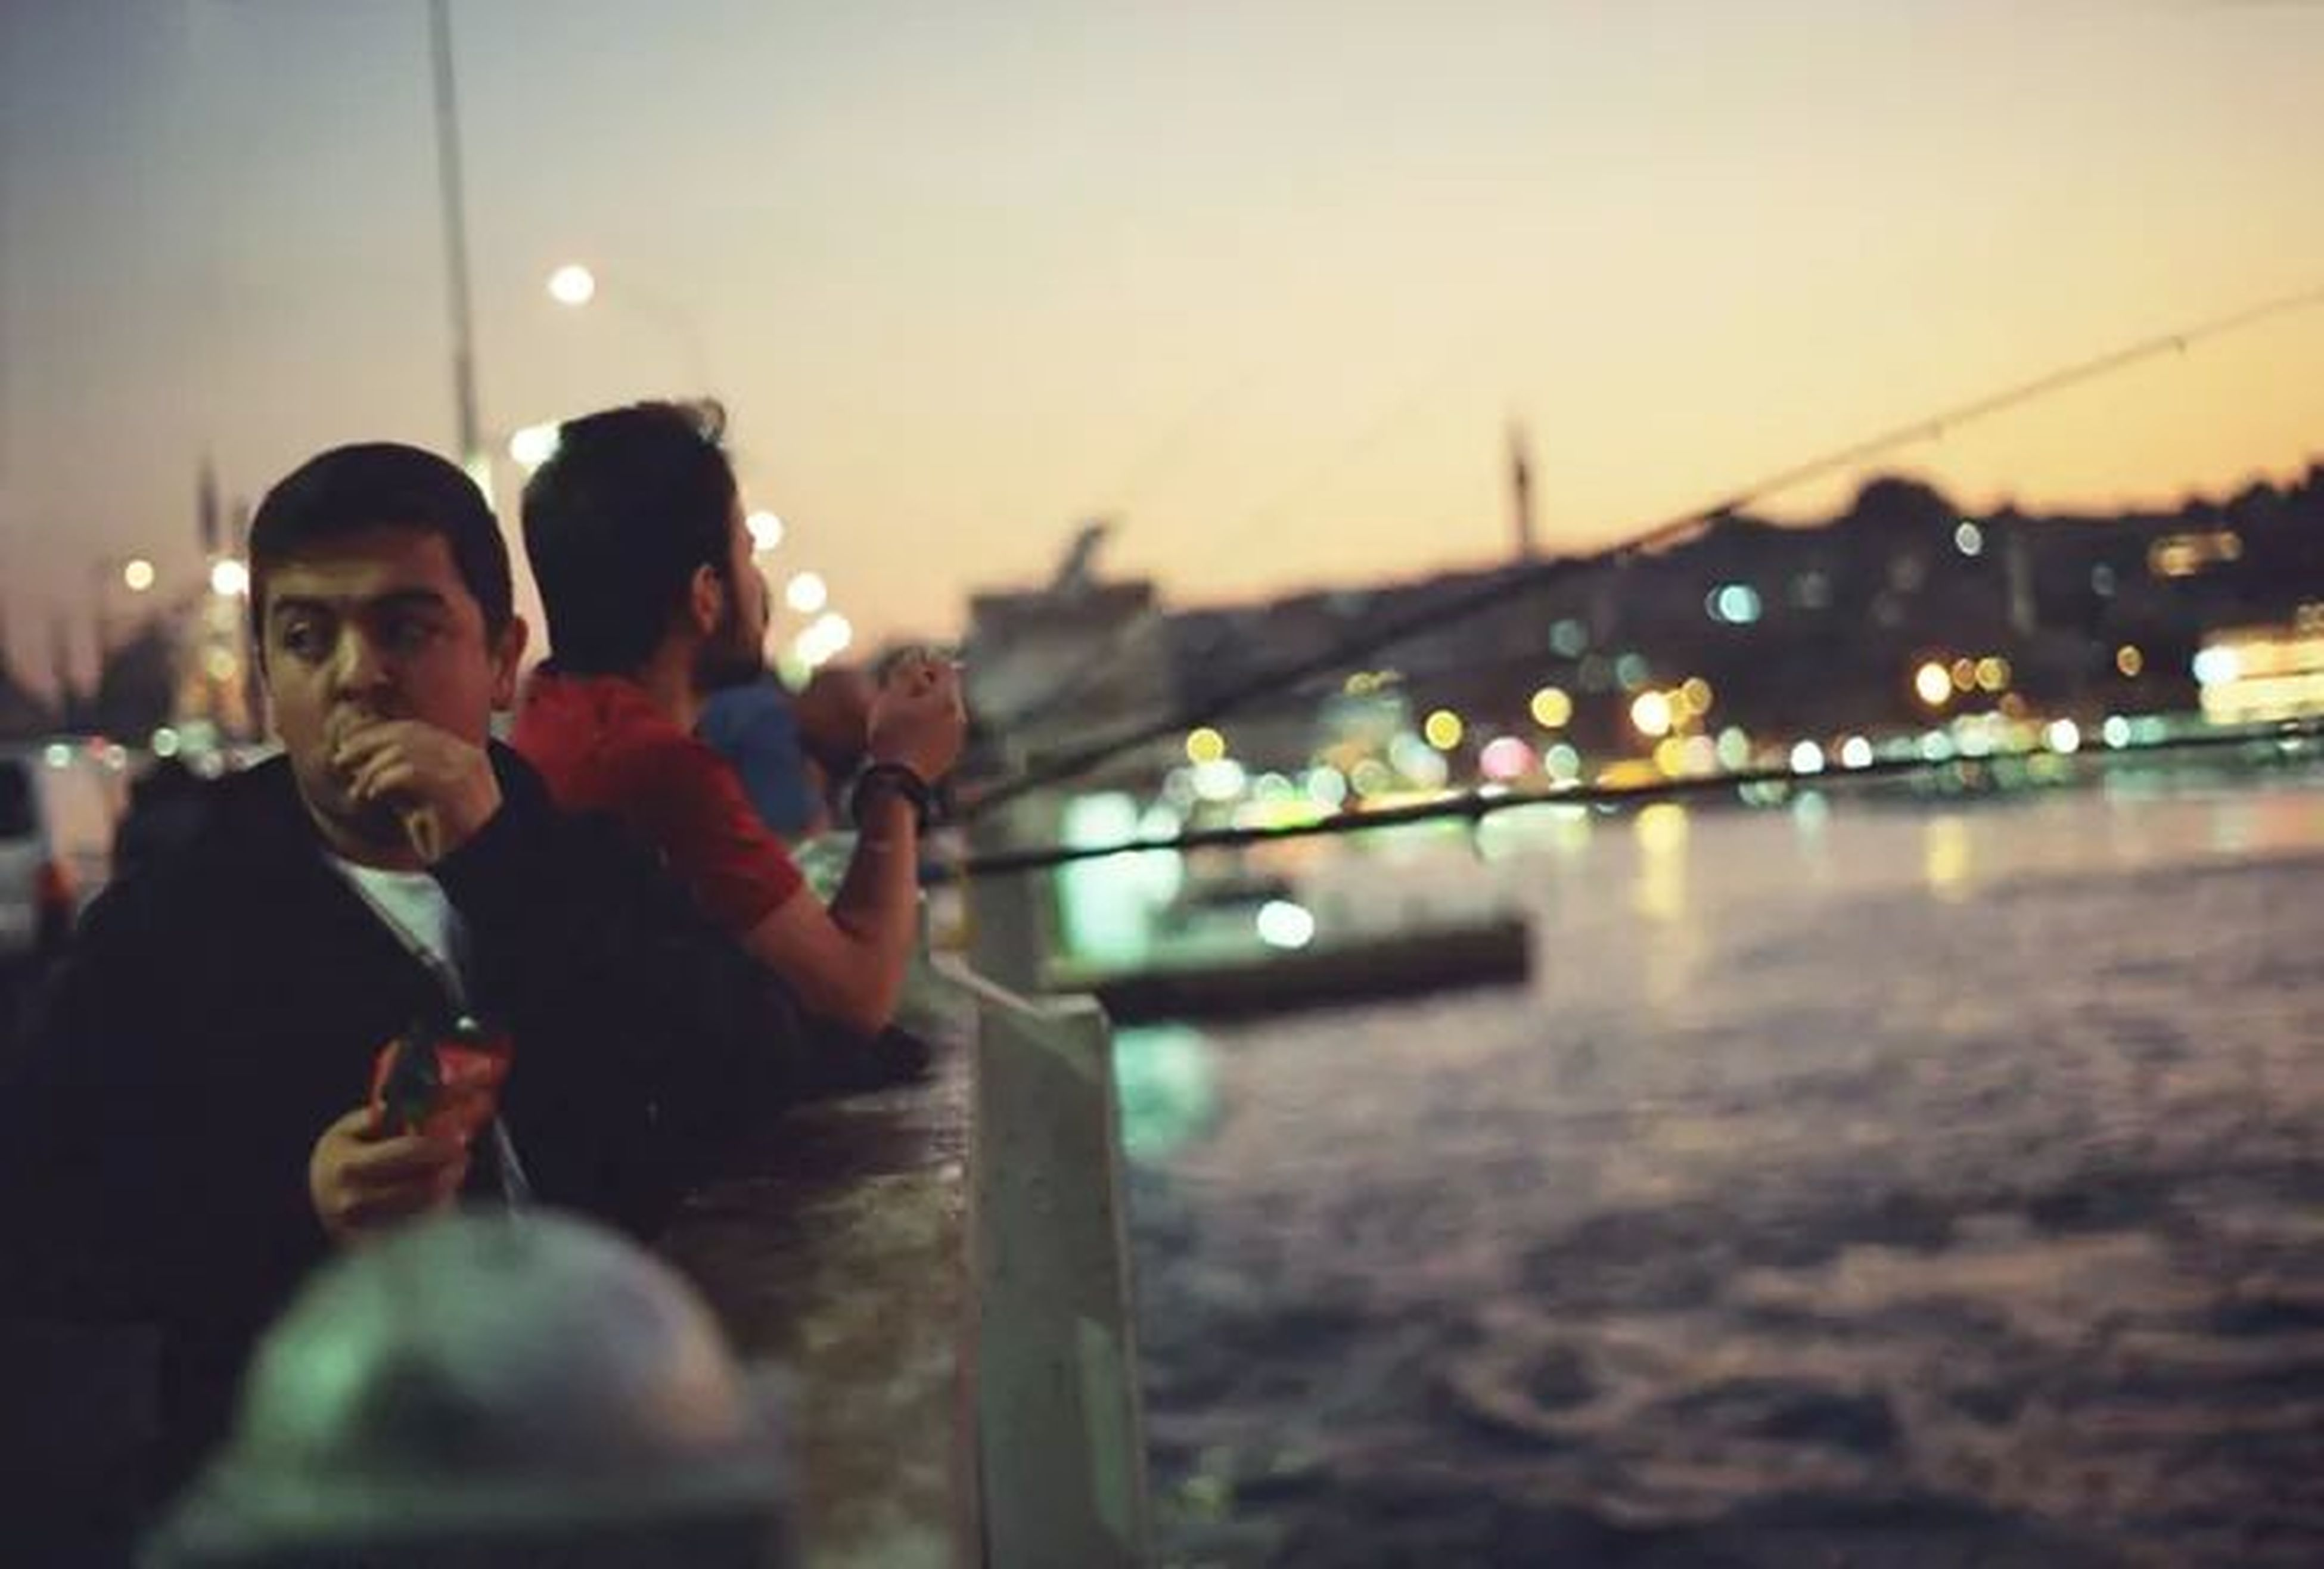 lifestyles, water, leisure activity, men, focus on foreground, person, reflection, clear sky, river, illuminated, outdoors, selective focus, standing, rear view, holding, sky, enjoyment